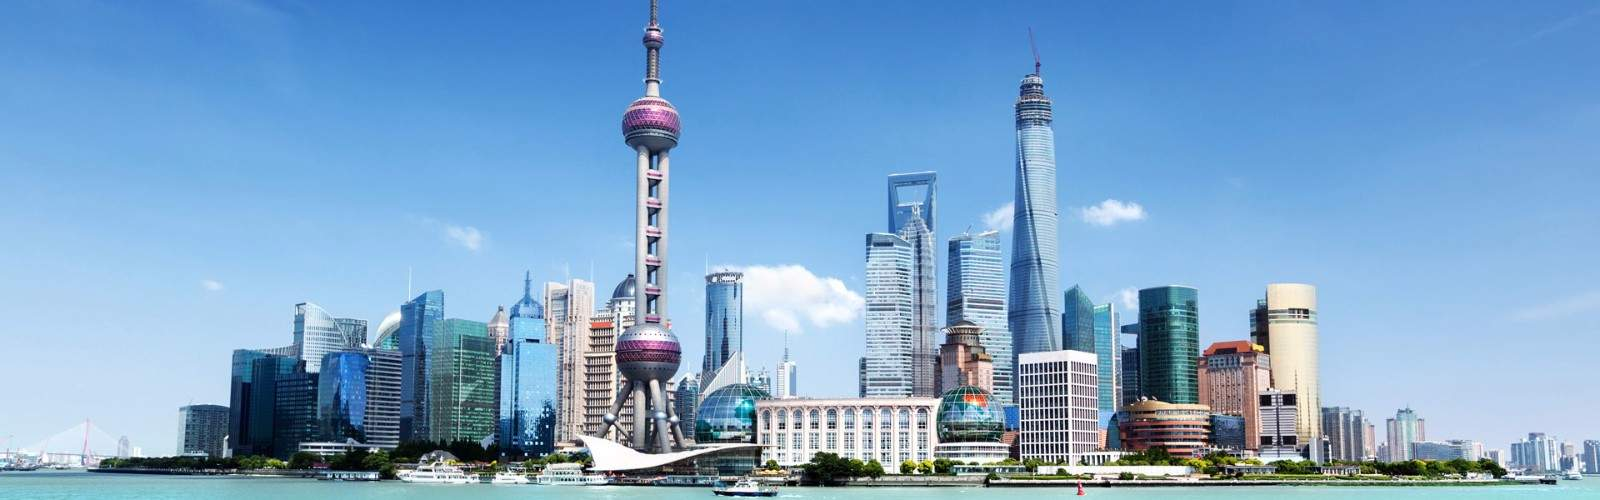 Huangpu River Cruise Holidays